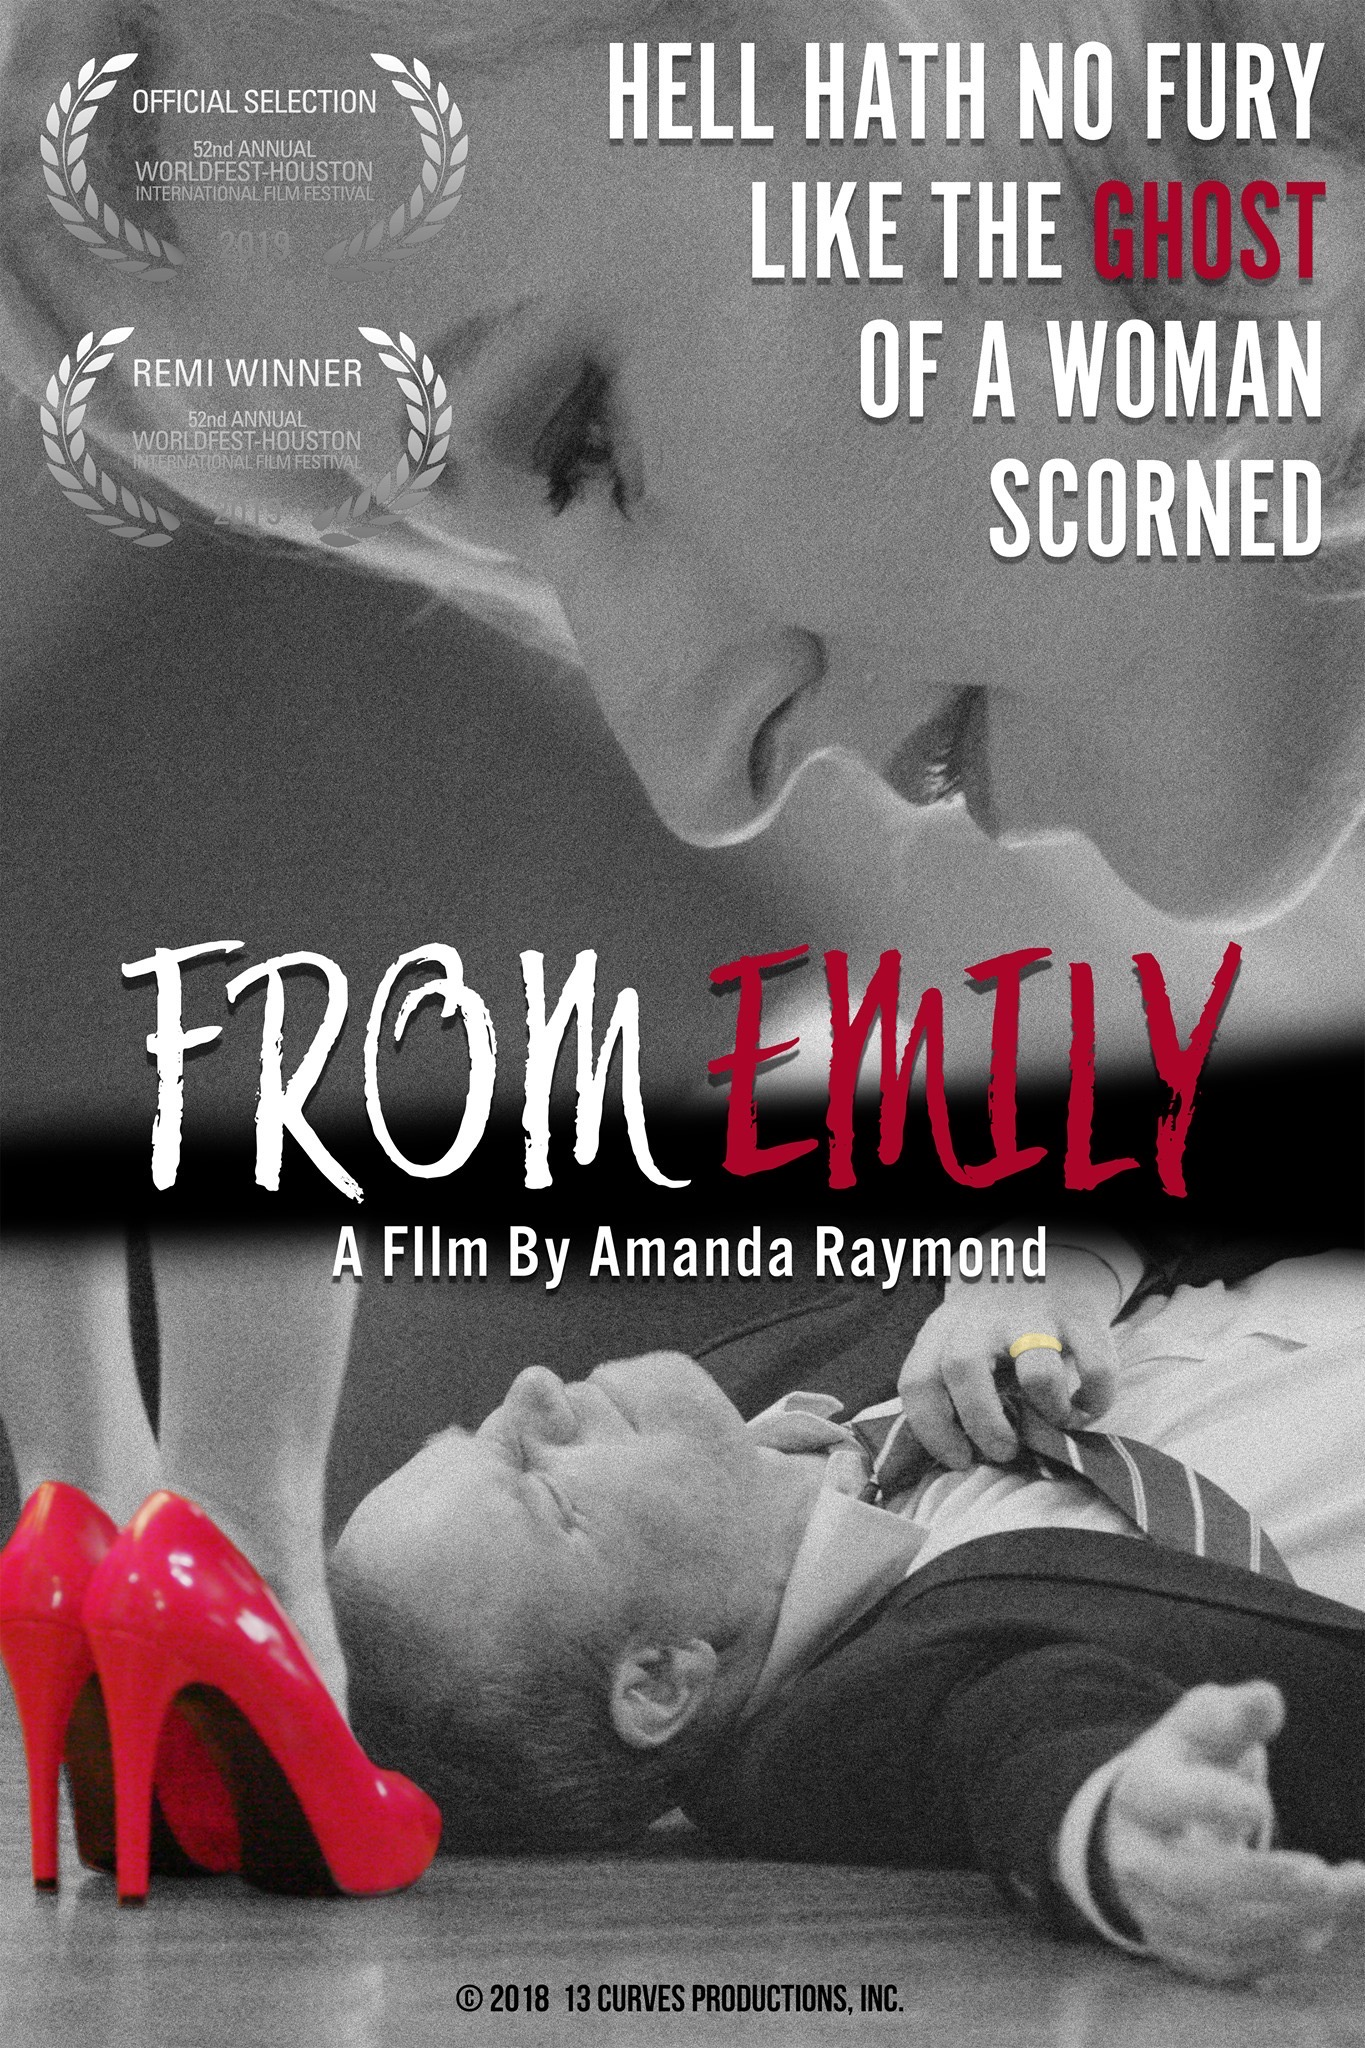 From Emily Poster with Festival Selections.jpeg